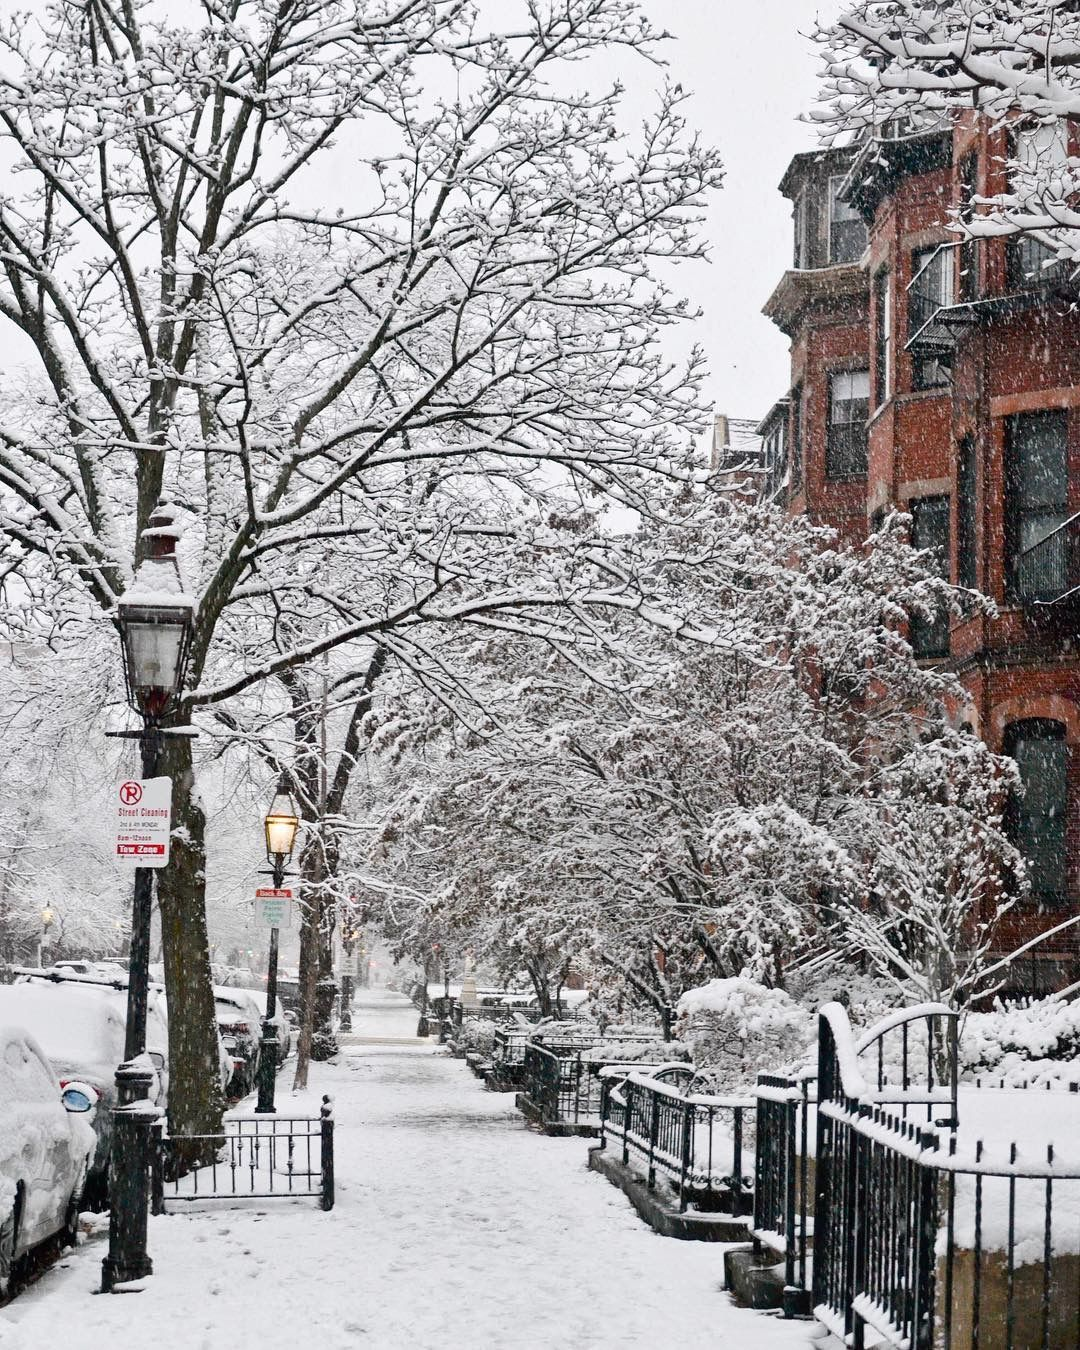 Chicago Apartment Hunting: Winter Wonderland In New York. Apartment & Home Hunting